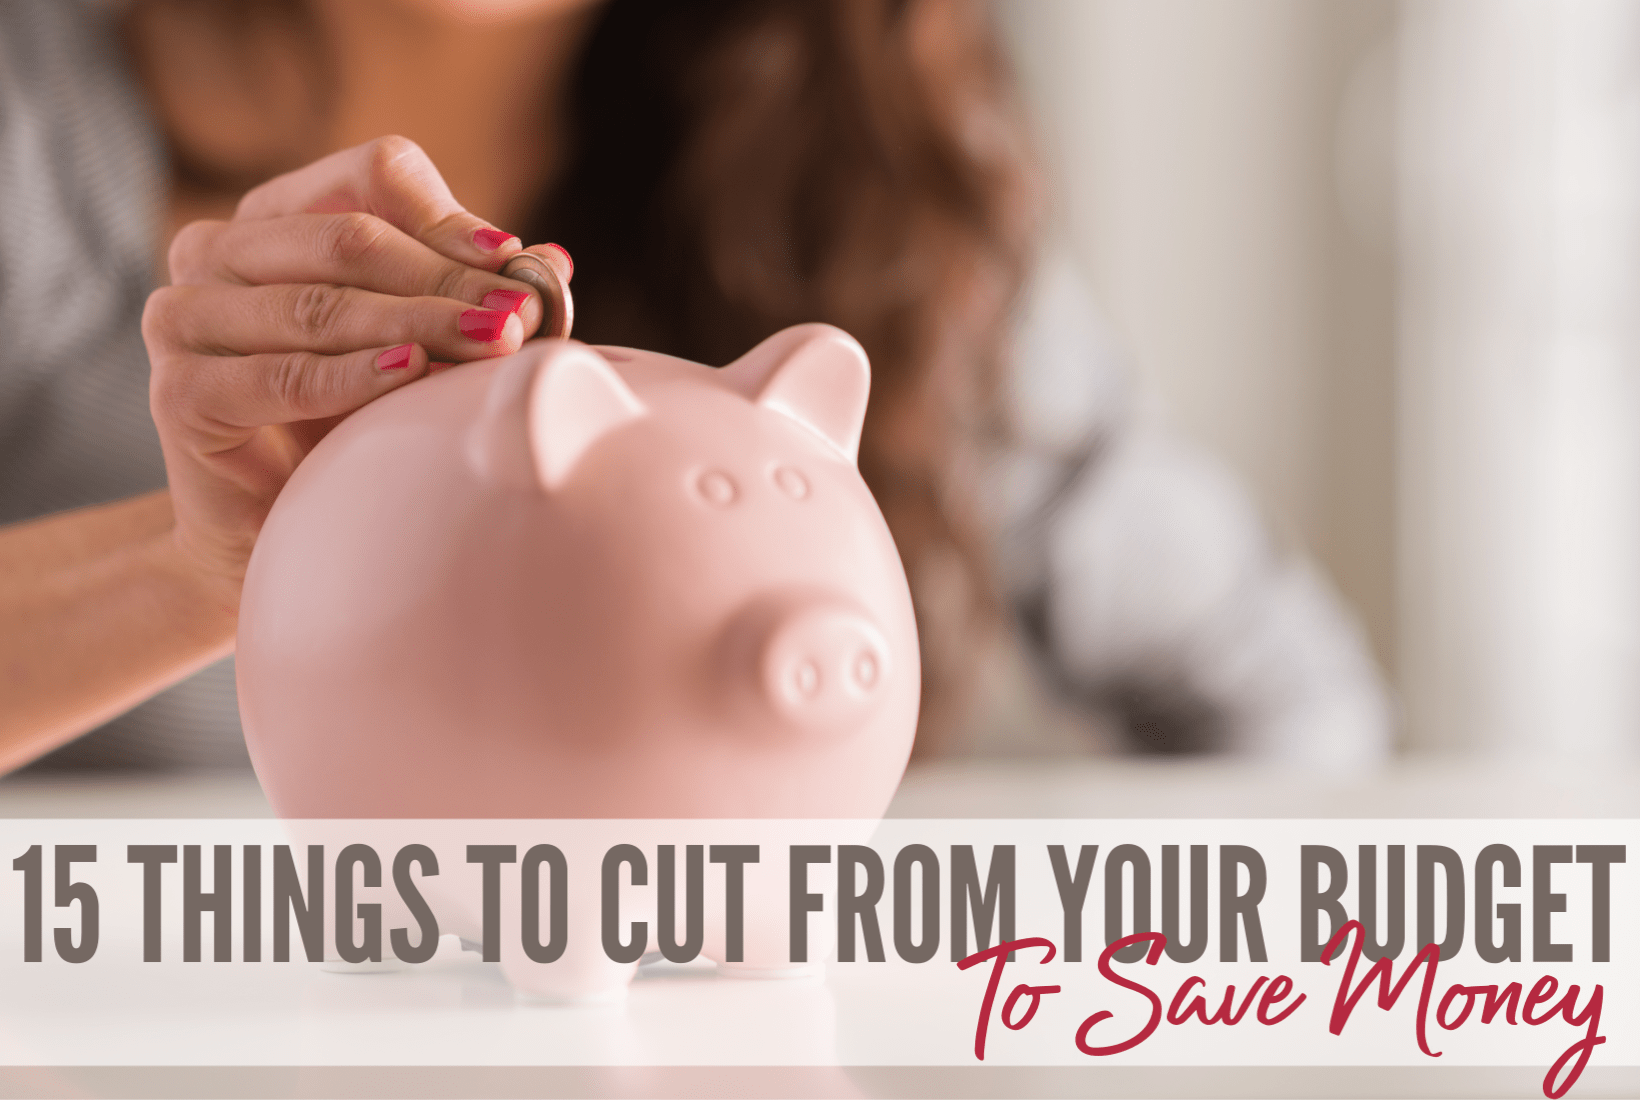 15 Things to Cut from your budget